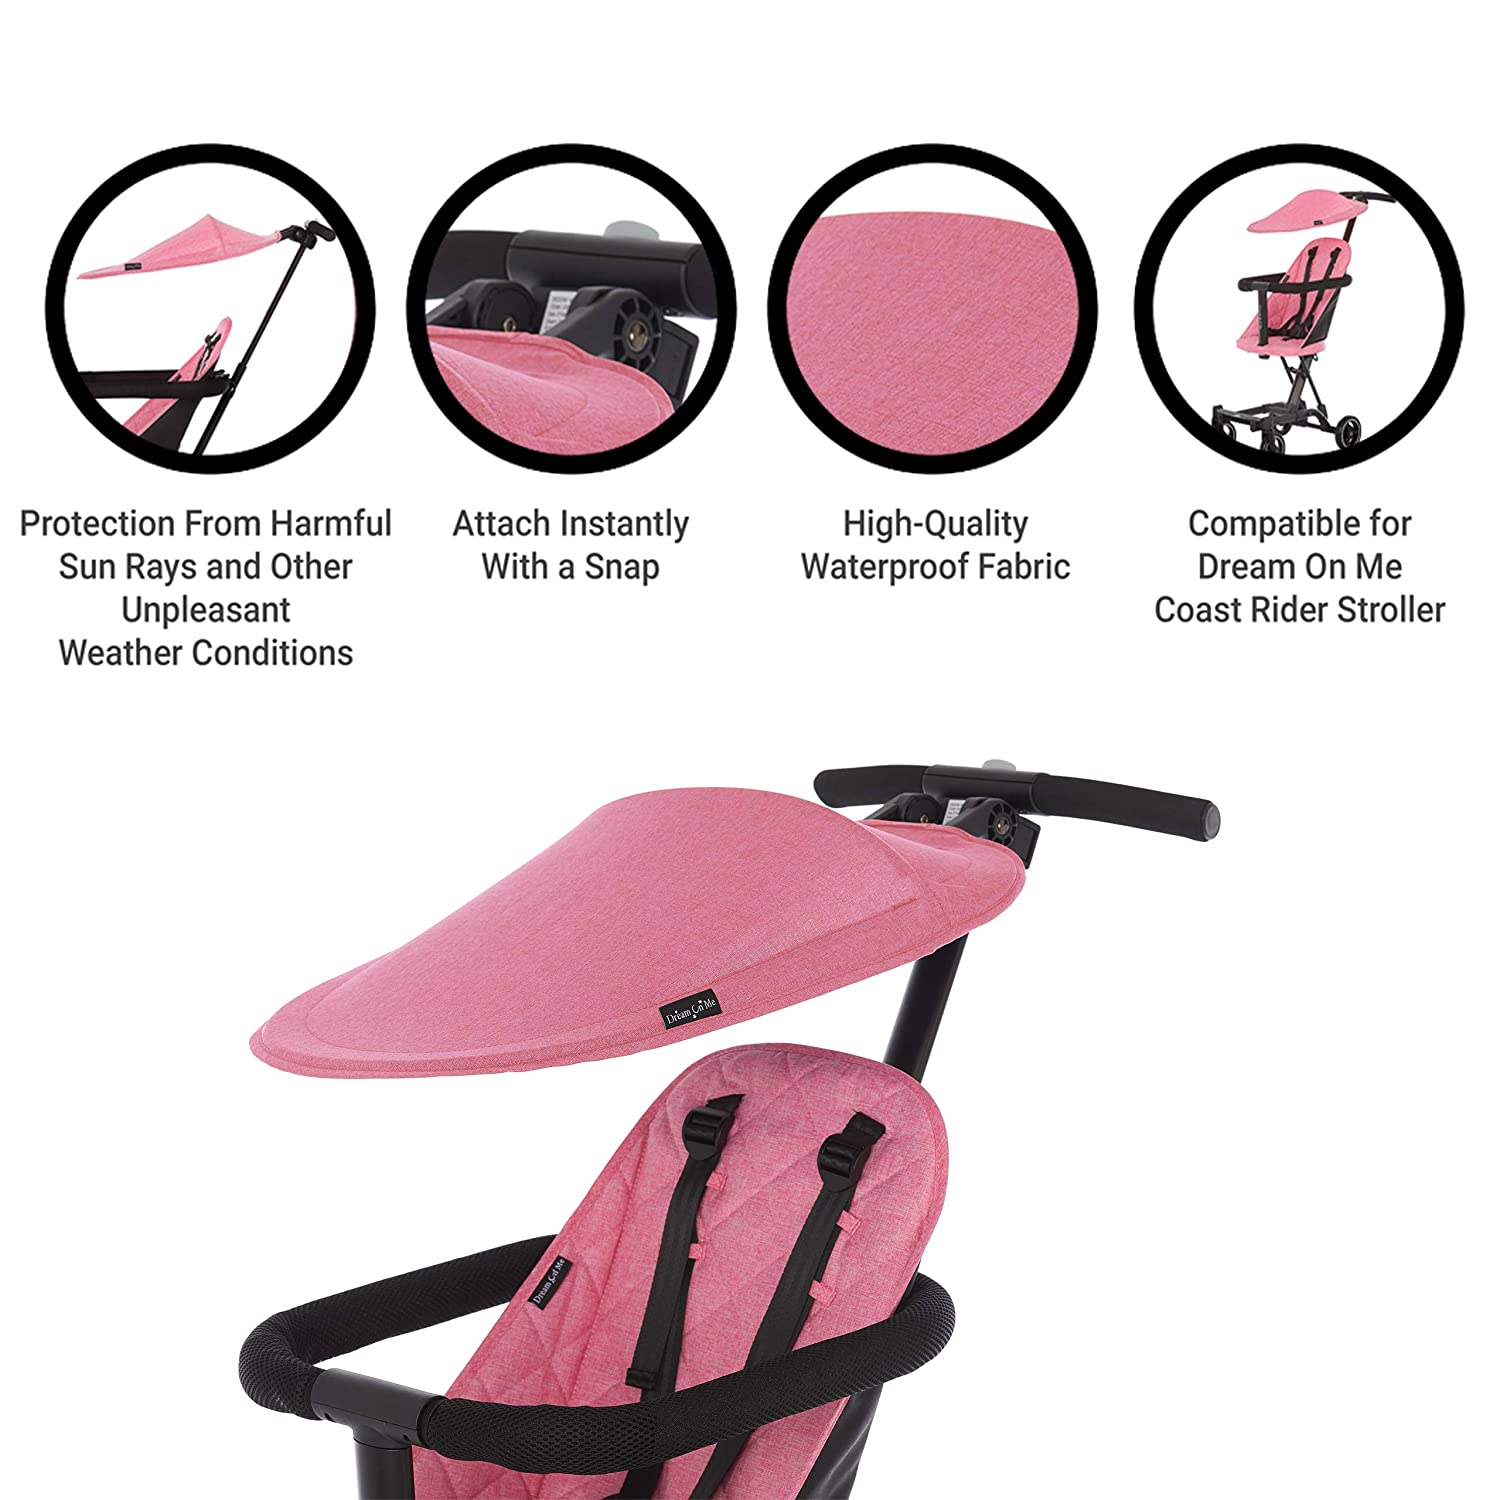 Dream On Me Coast Rider Travel Stroller Lightweight Stroller Compact Portable and Vacation Friendly Stroller, Pink